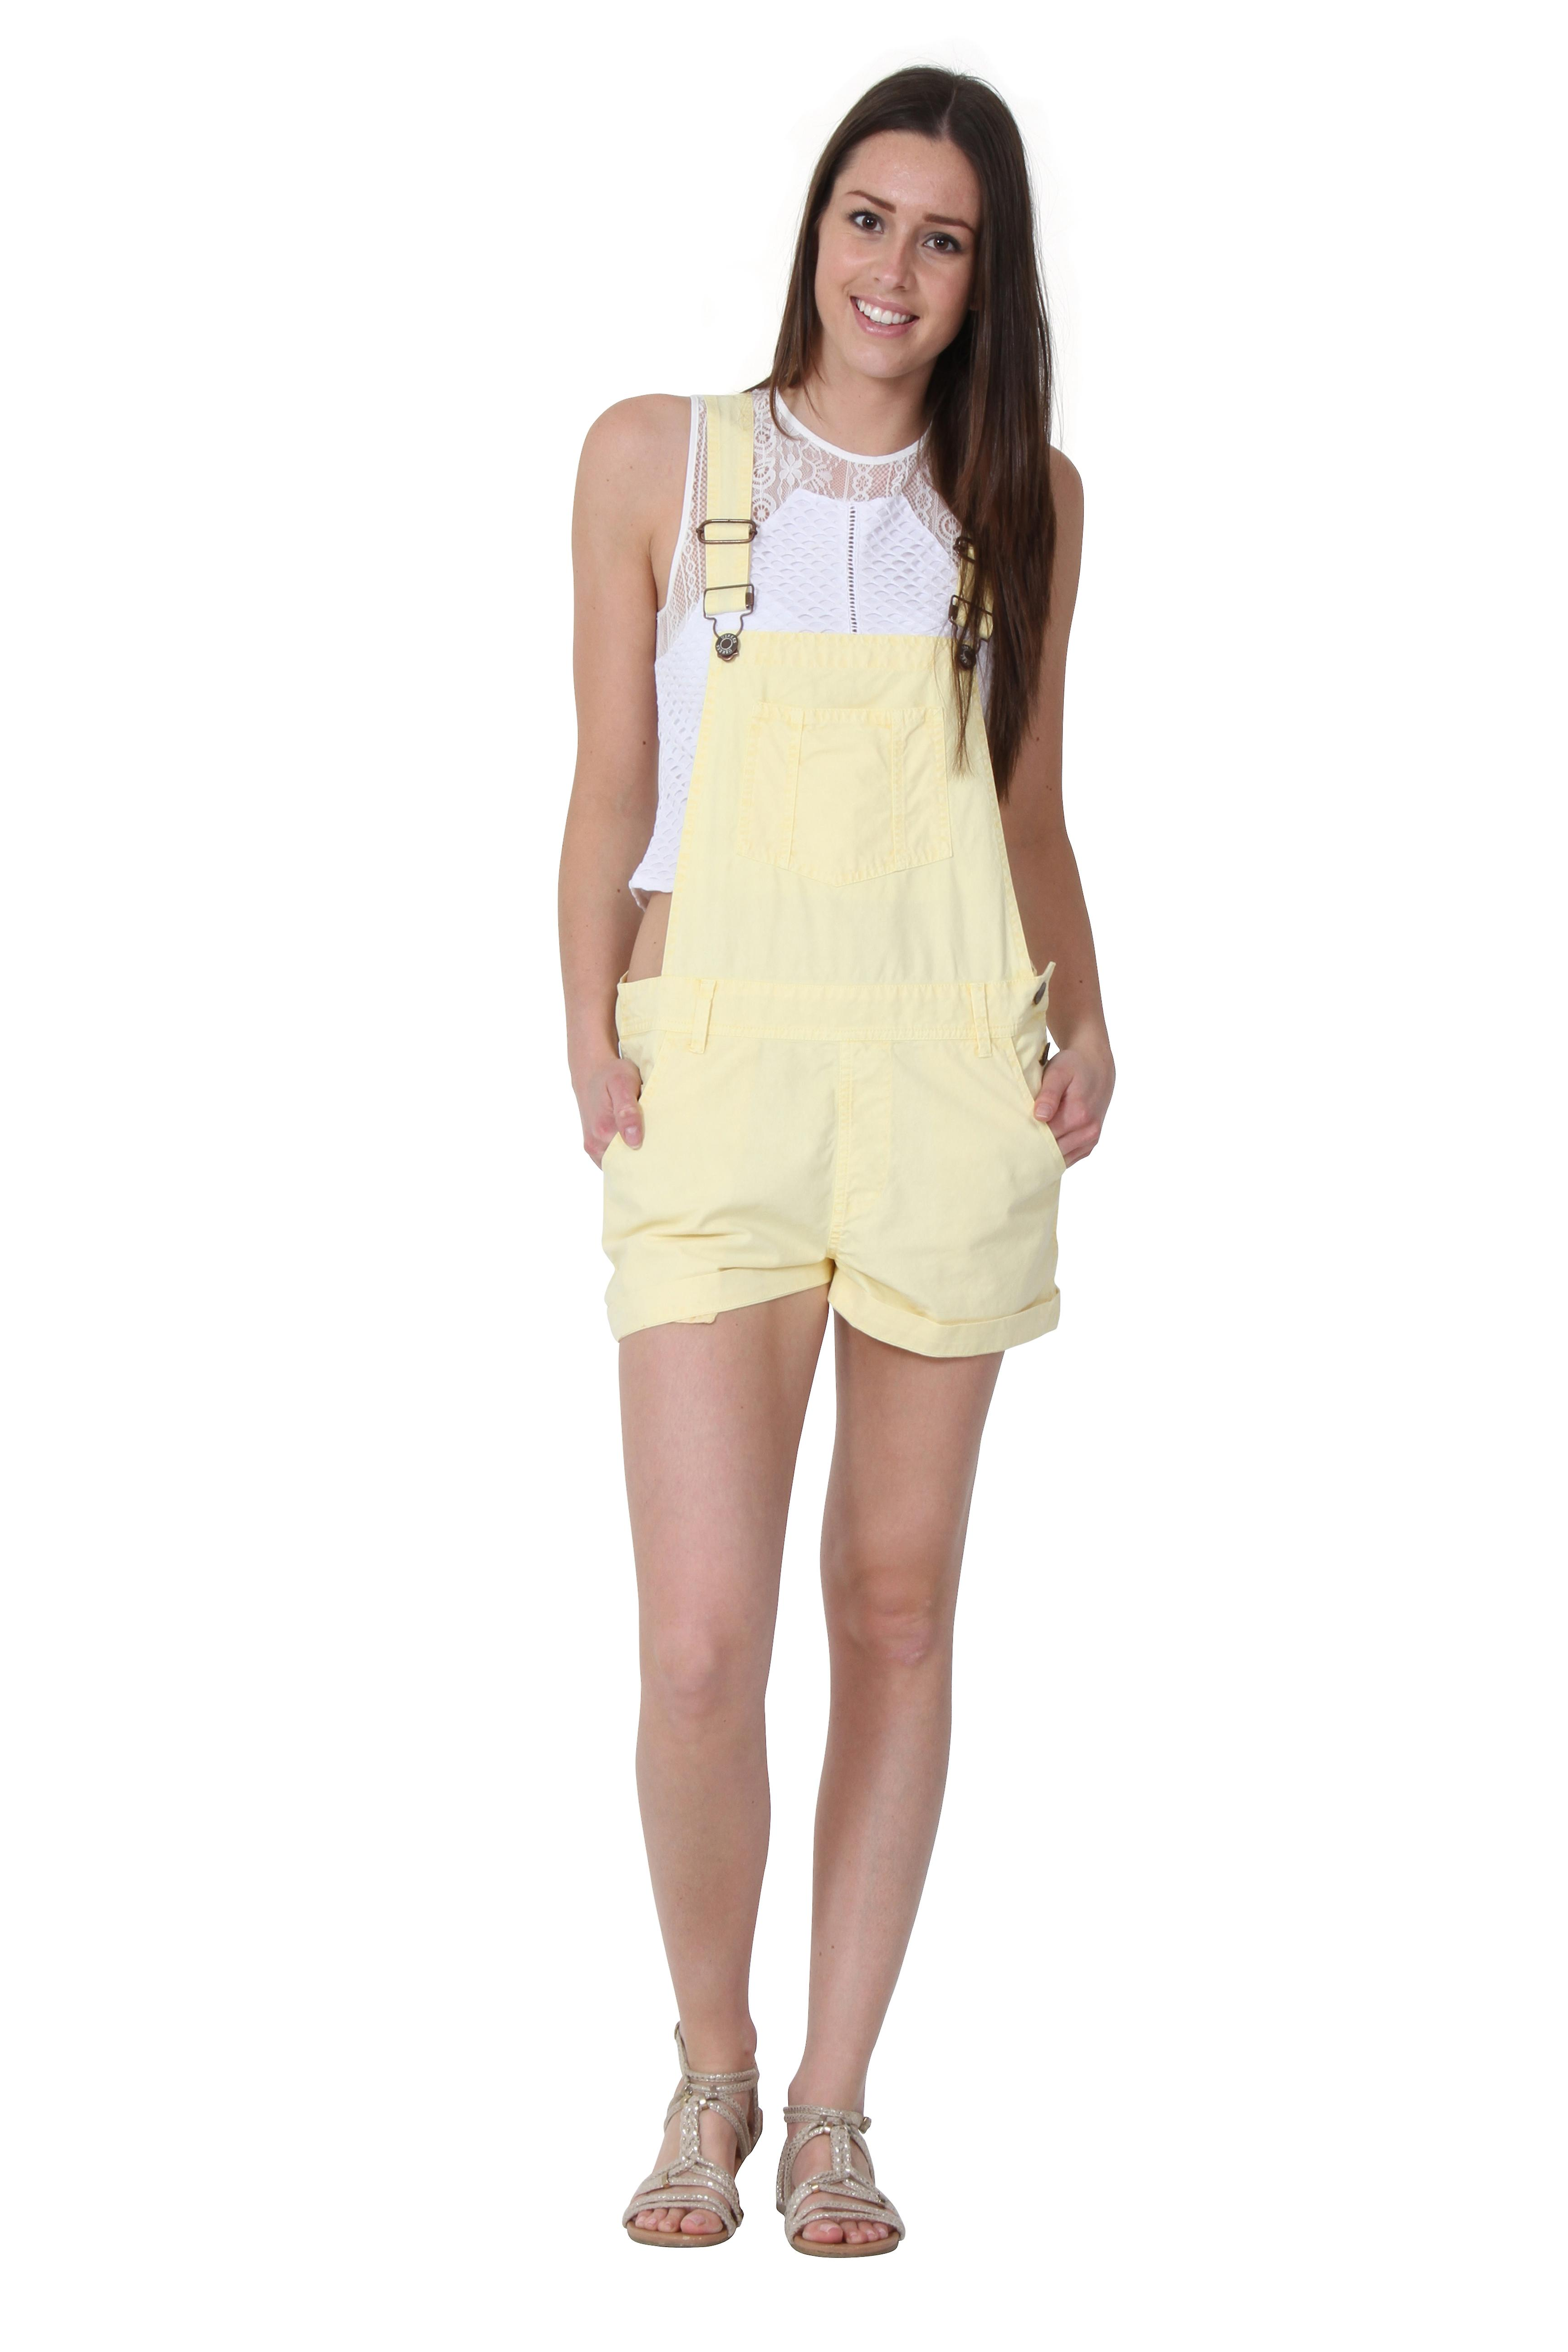 USKEES ANNA Oversized Dungaree Shorts Ladies Overalls Bib-shorts